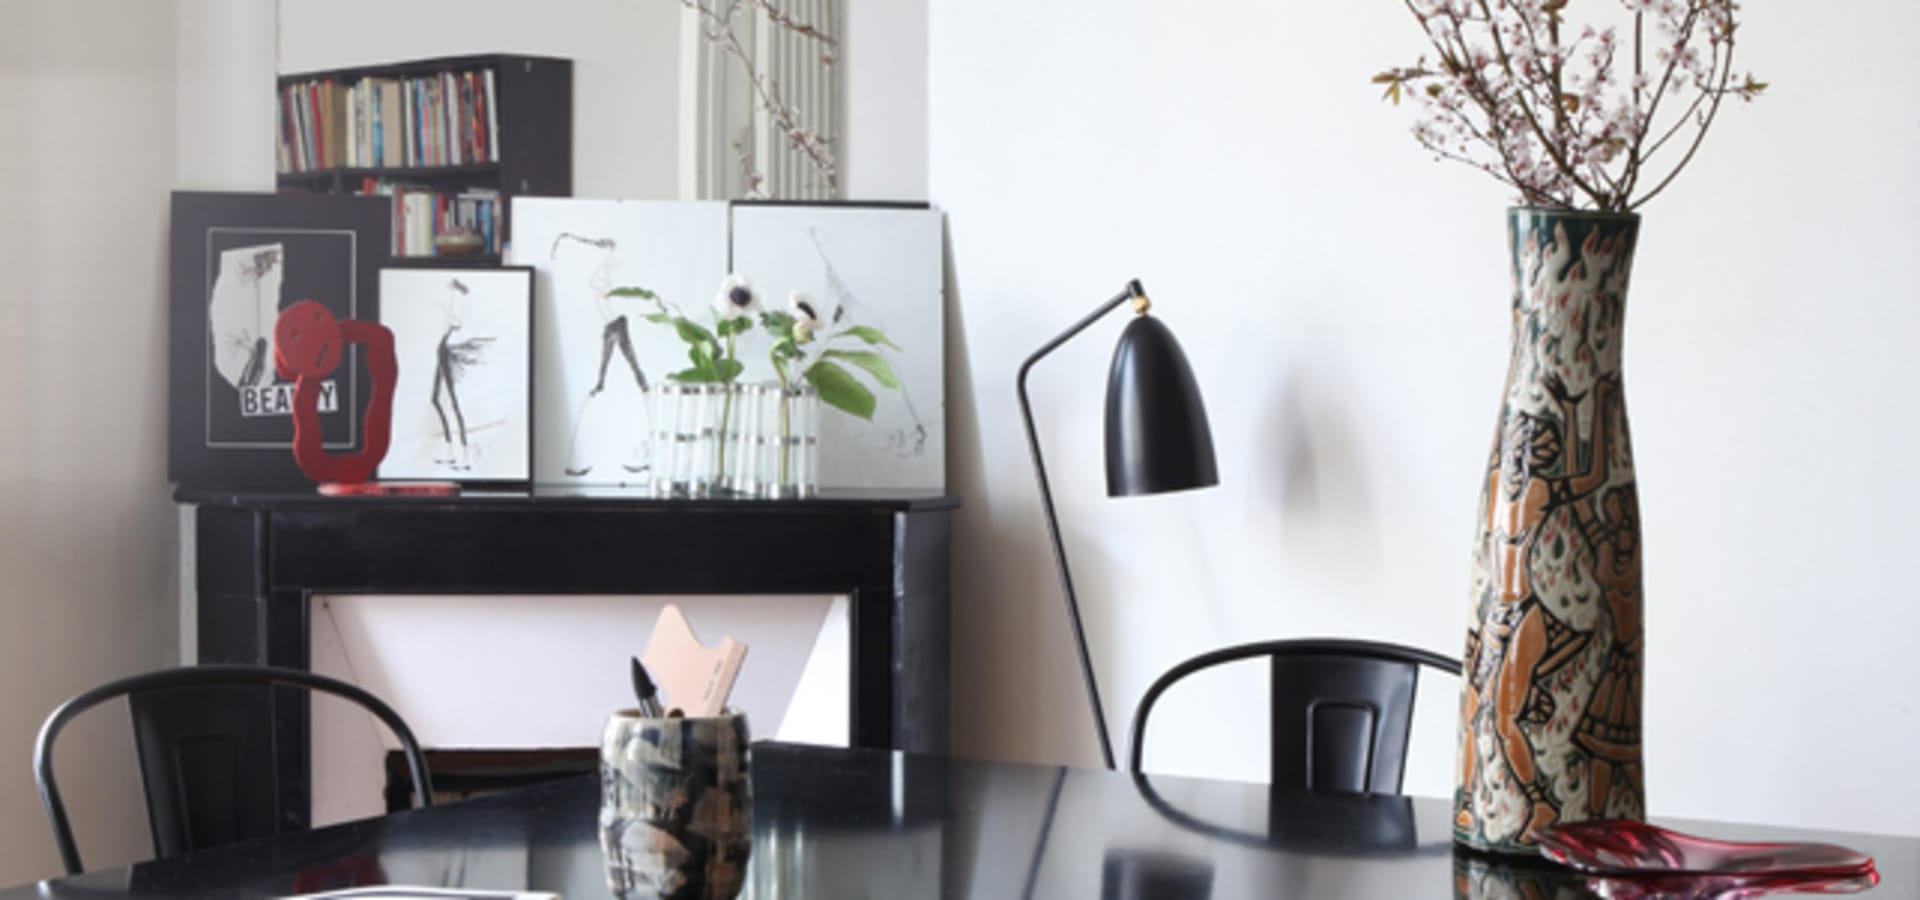 studio f lix patrat architectes d 39 int rieur paris sur homify. Black Bedroom Furniture Sets. Home Design Ideas